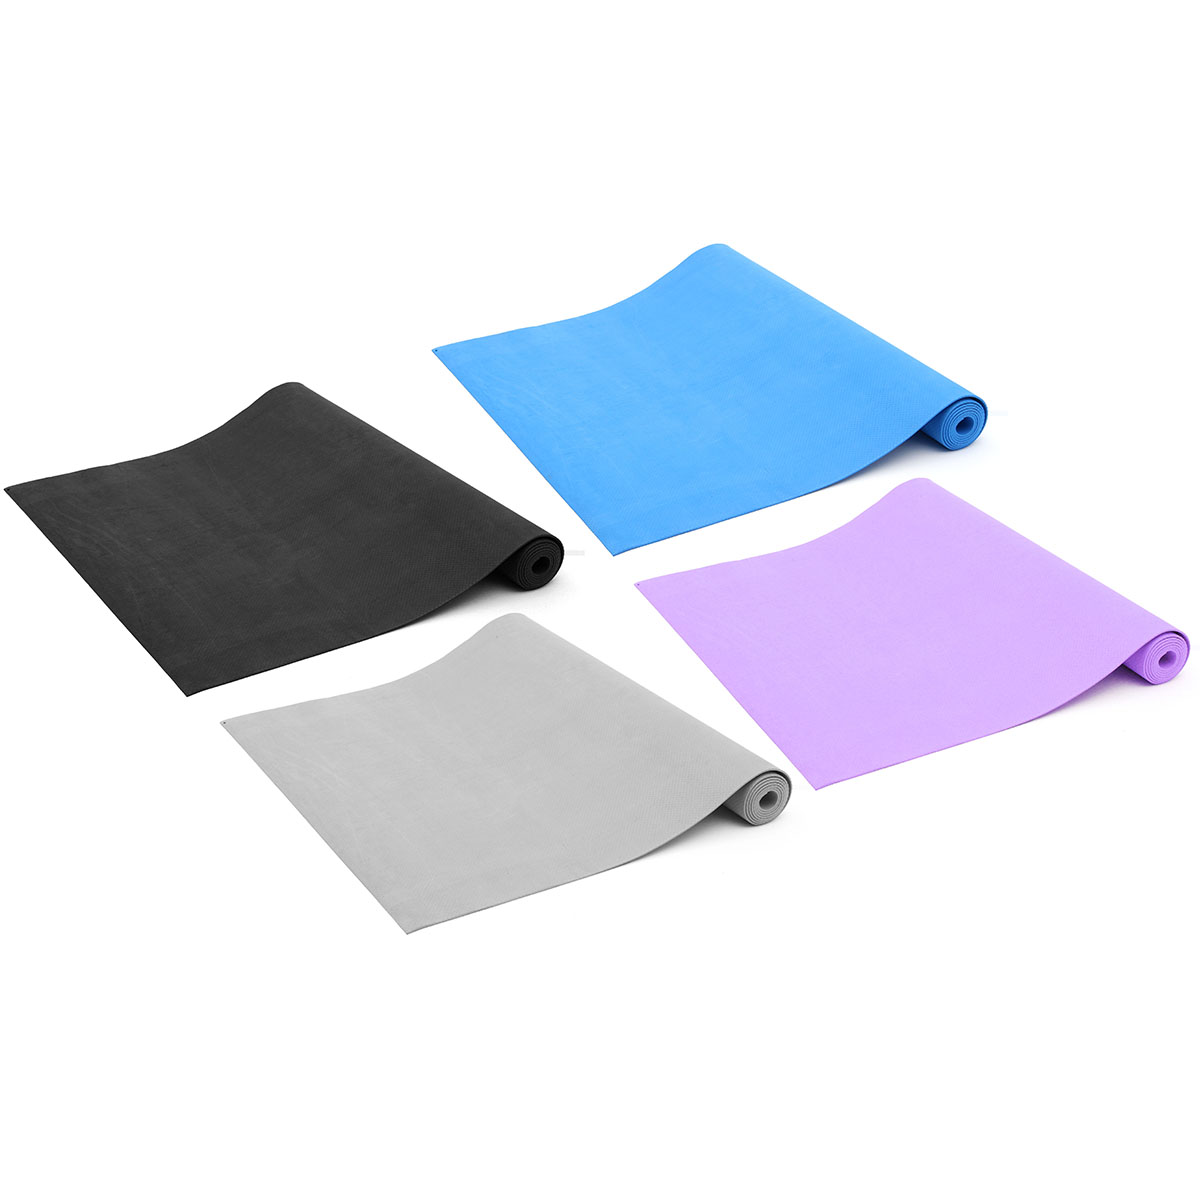 Workout Mats For Gym Online Eoua Blog